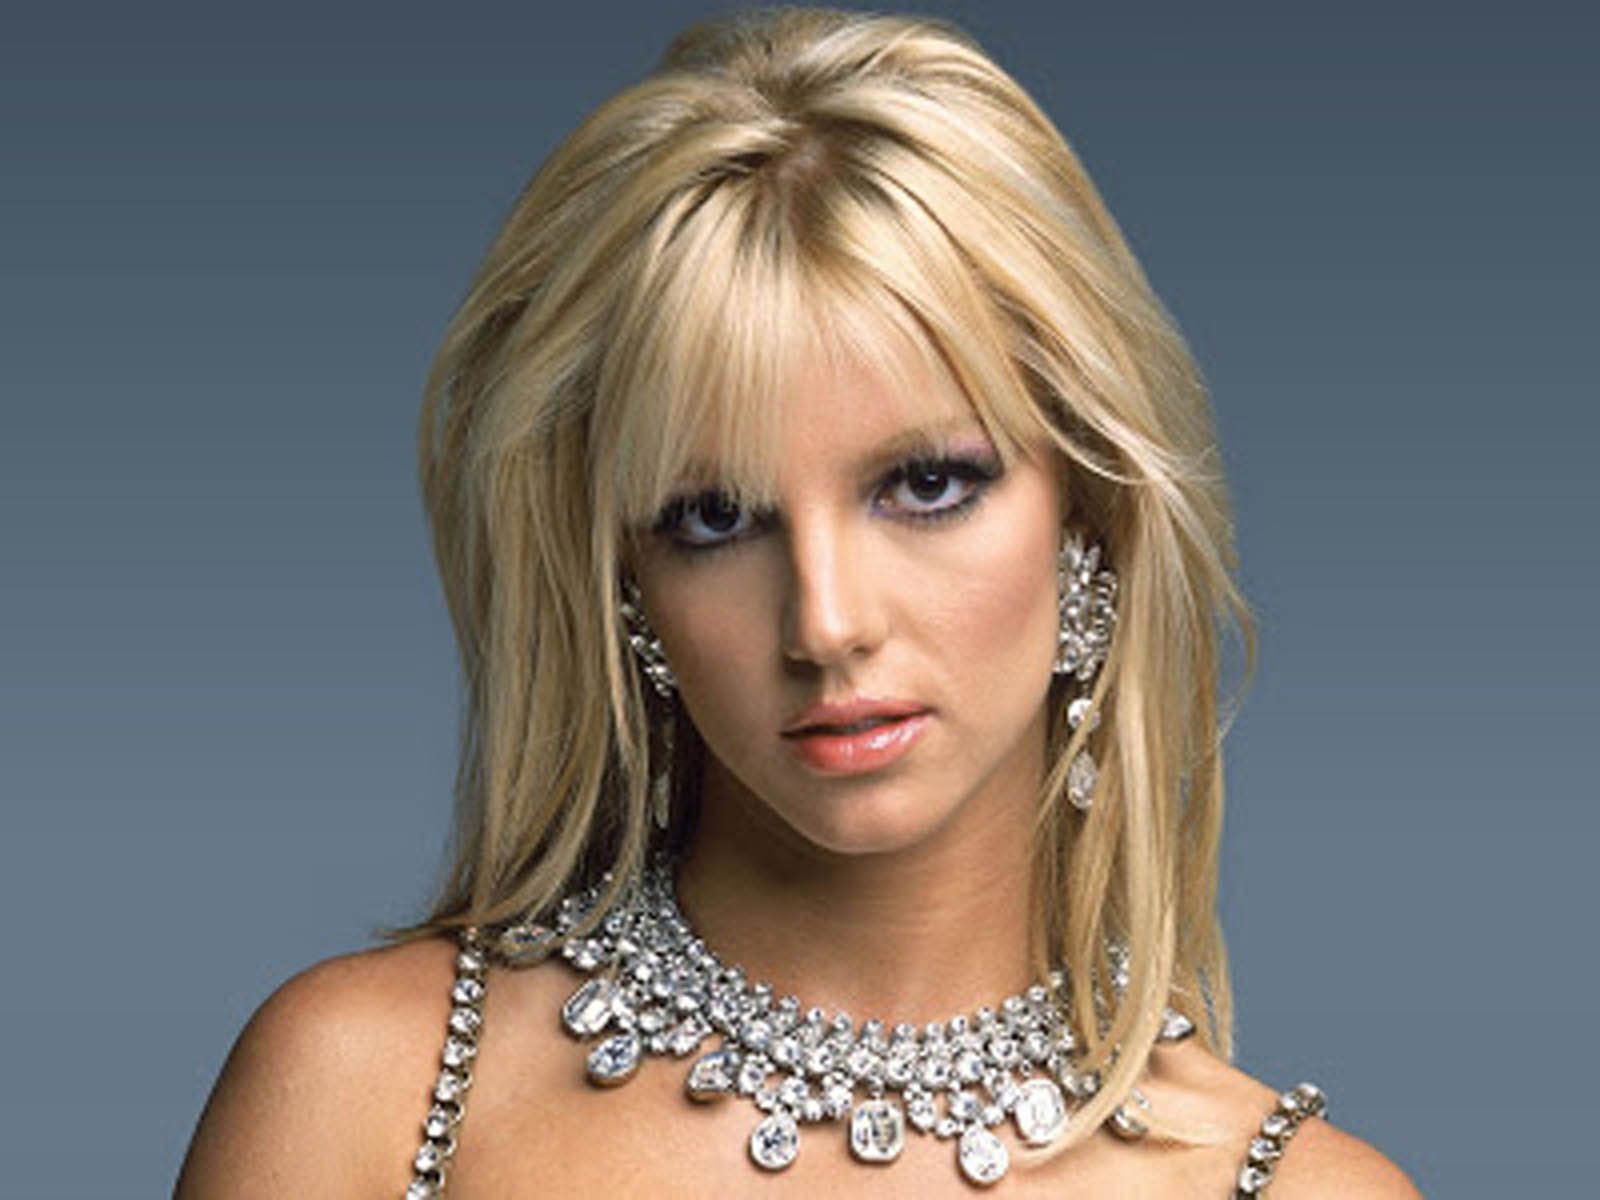 Britney spears wallpapers britney spears pics britney spears